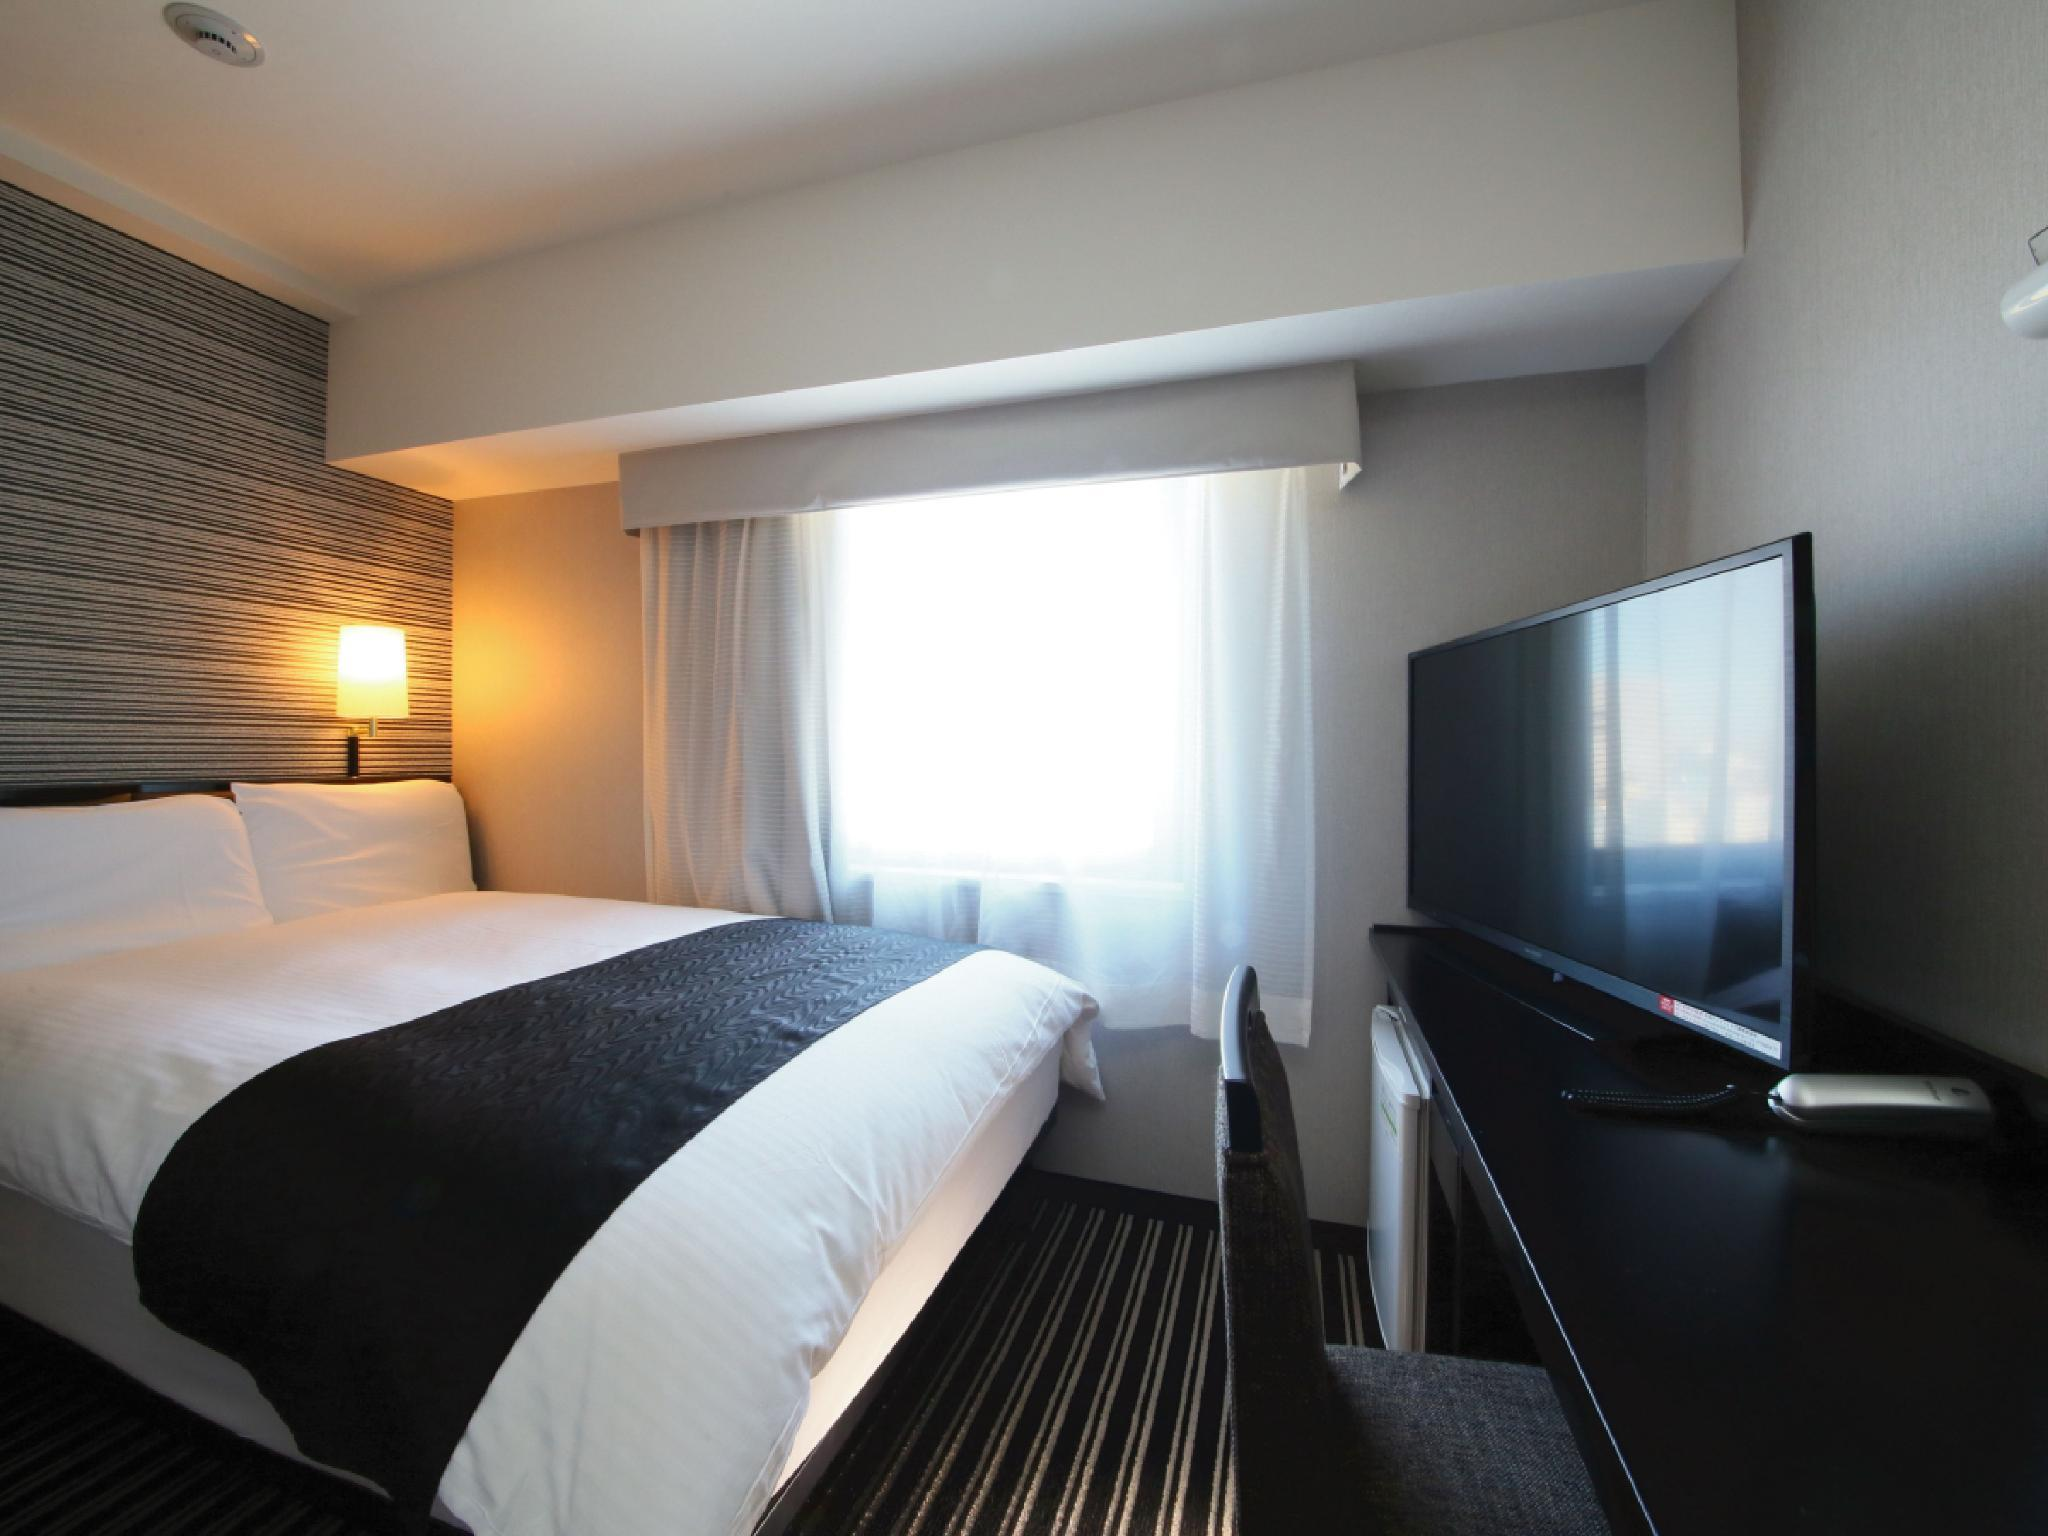 Day Use - Double Room - Smoking 5 Hours Between 12:00 and 17:00 (5 hour use only)